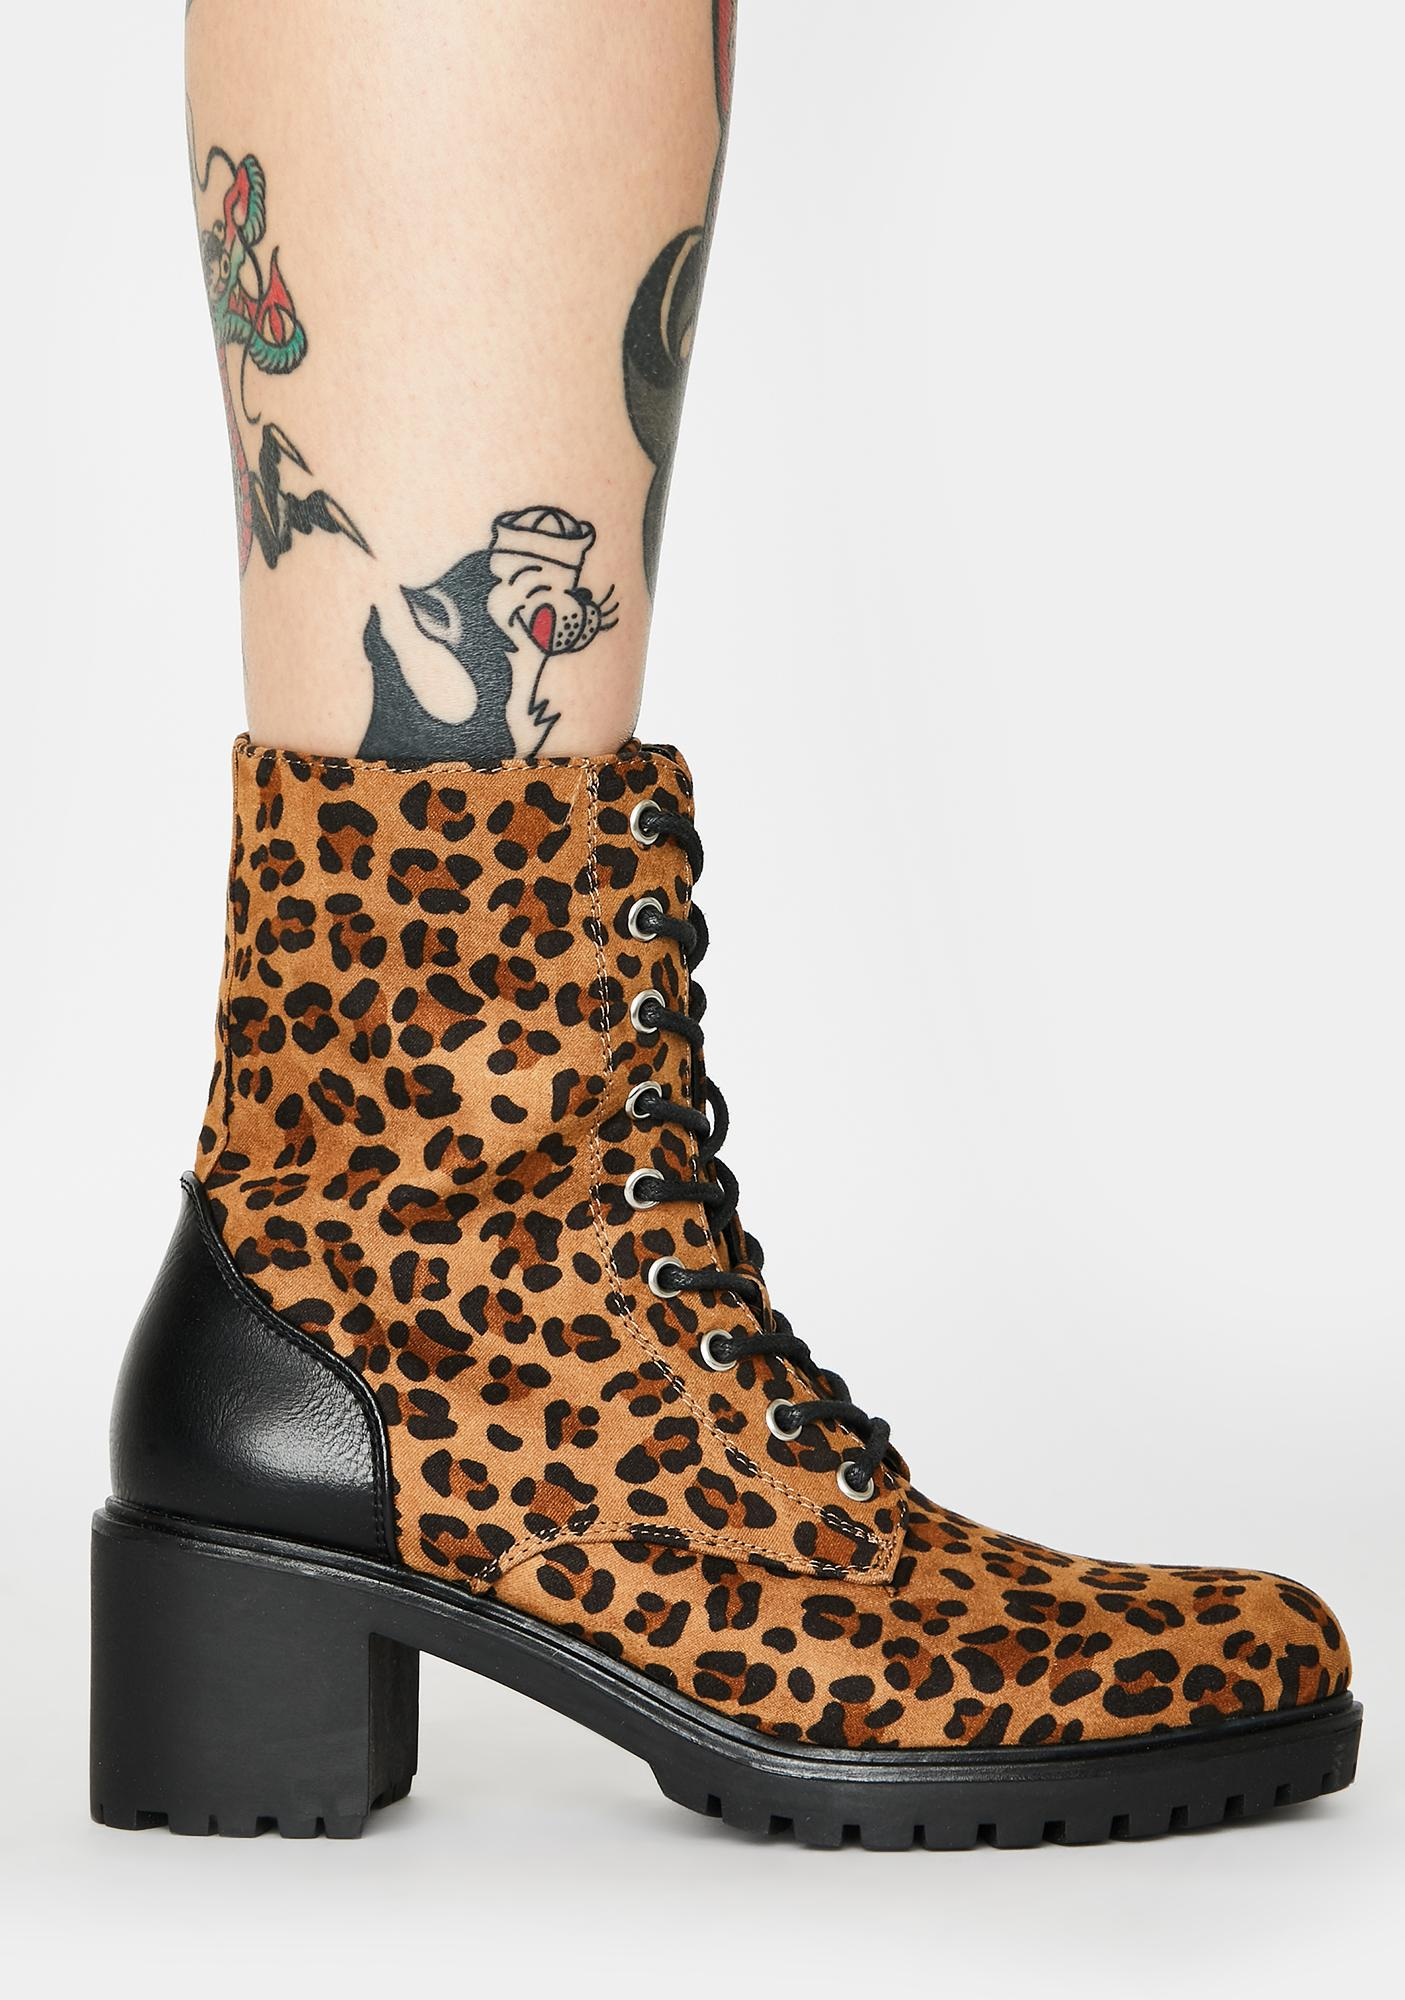 Gives U Hell Leopard Boots